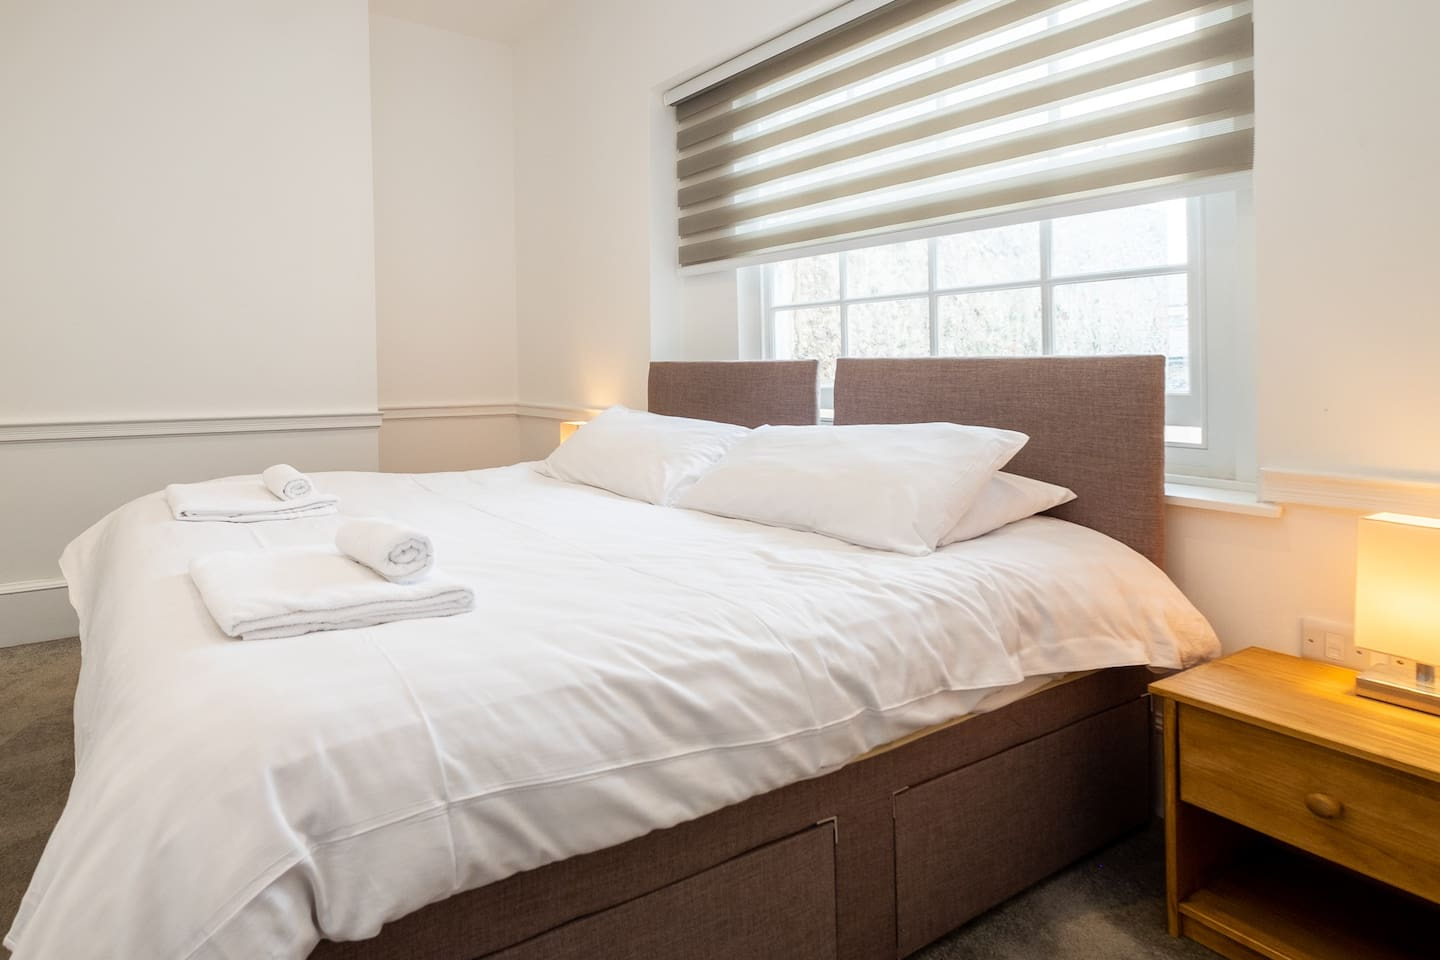 The bedroom has a double bed made up with fresh white linen and towels